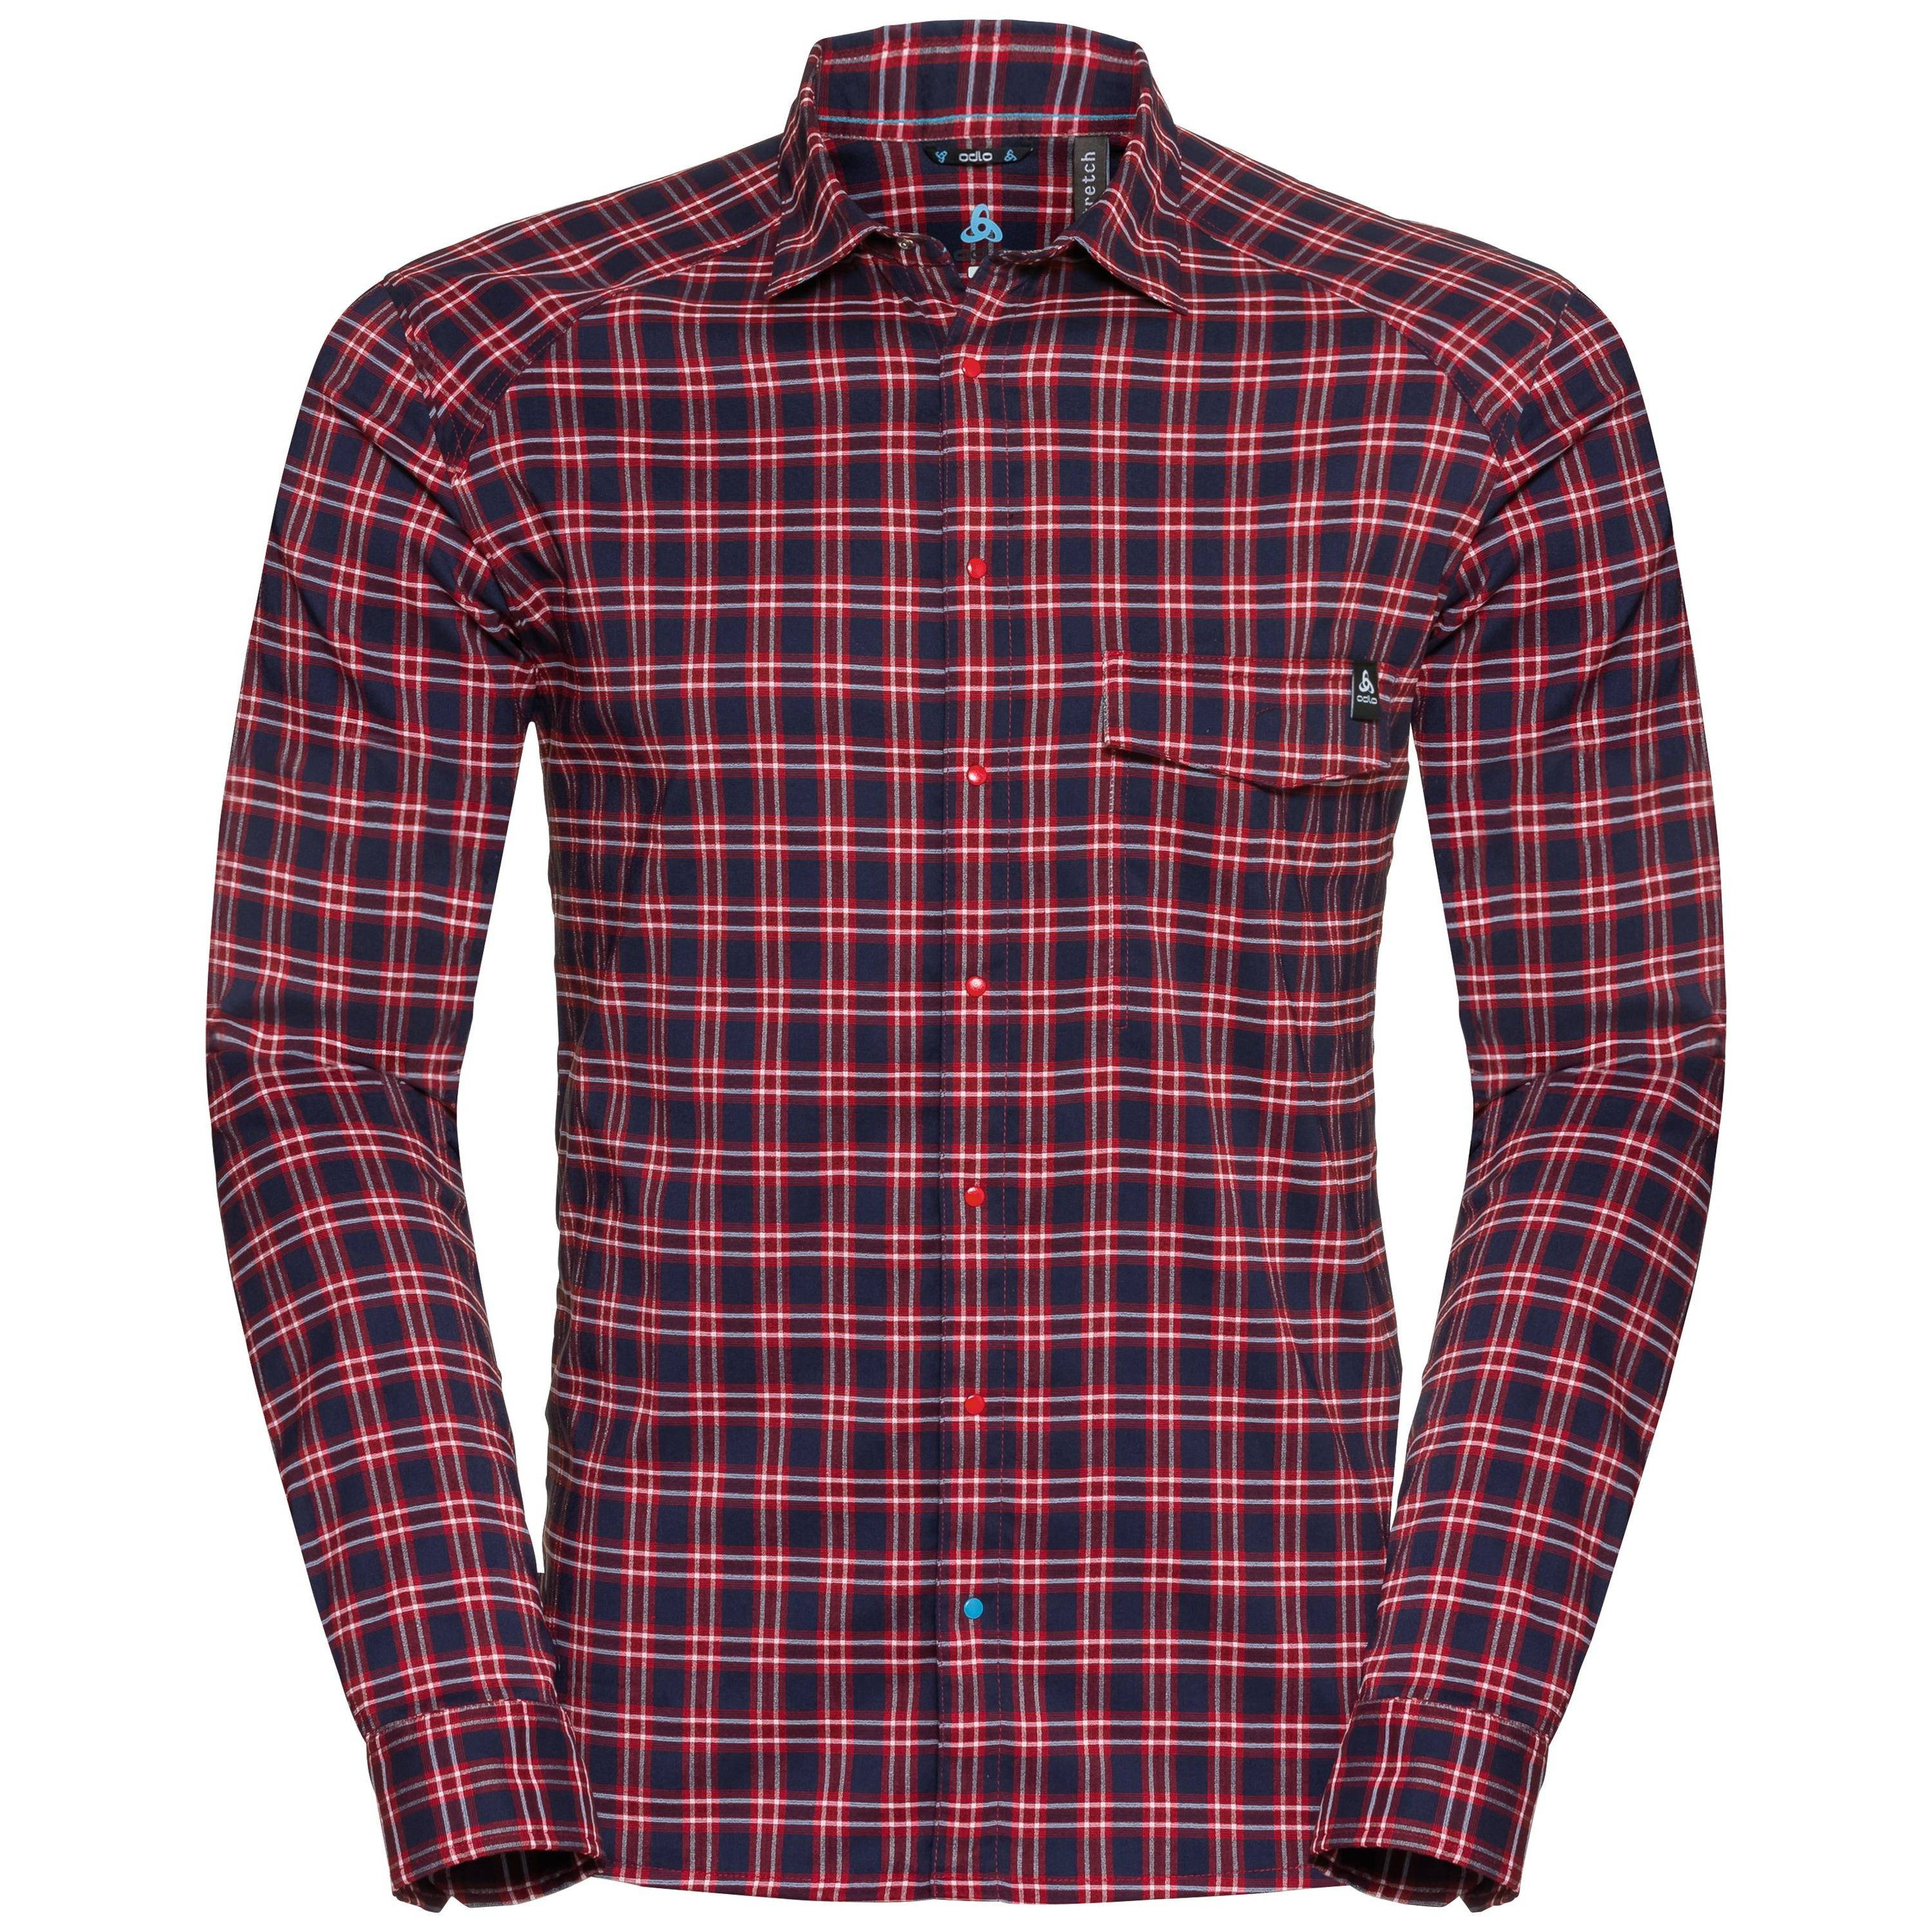 Odlo Burnaby manches longues avec BOUTONS red dahlia - chinese red - peacoat - check taille: XL